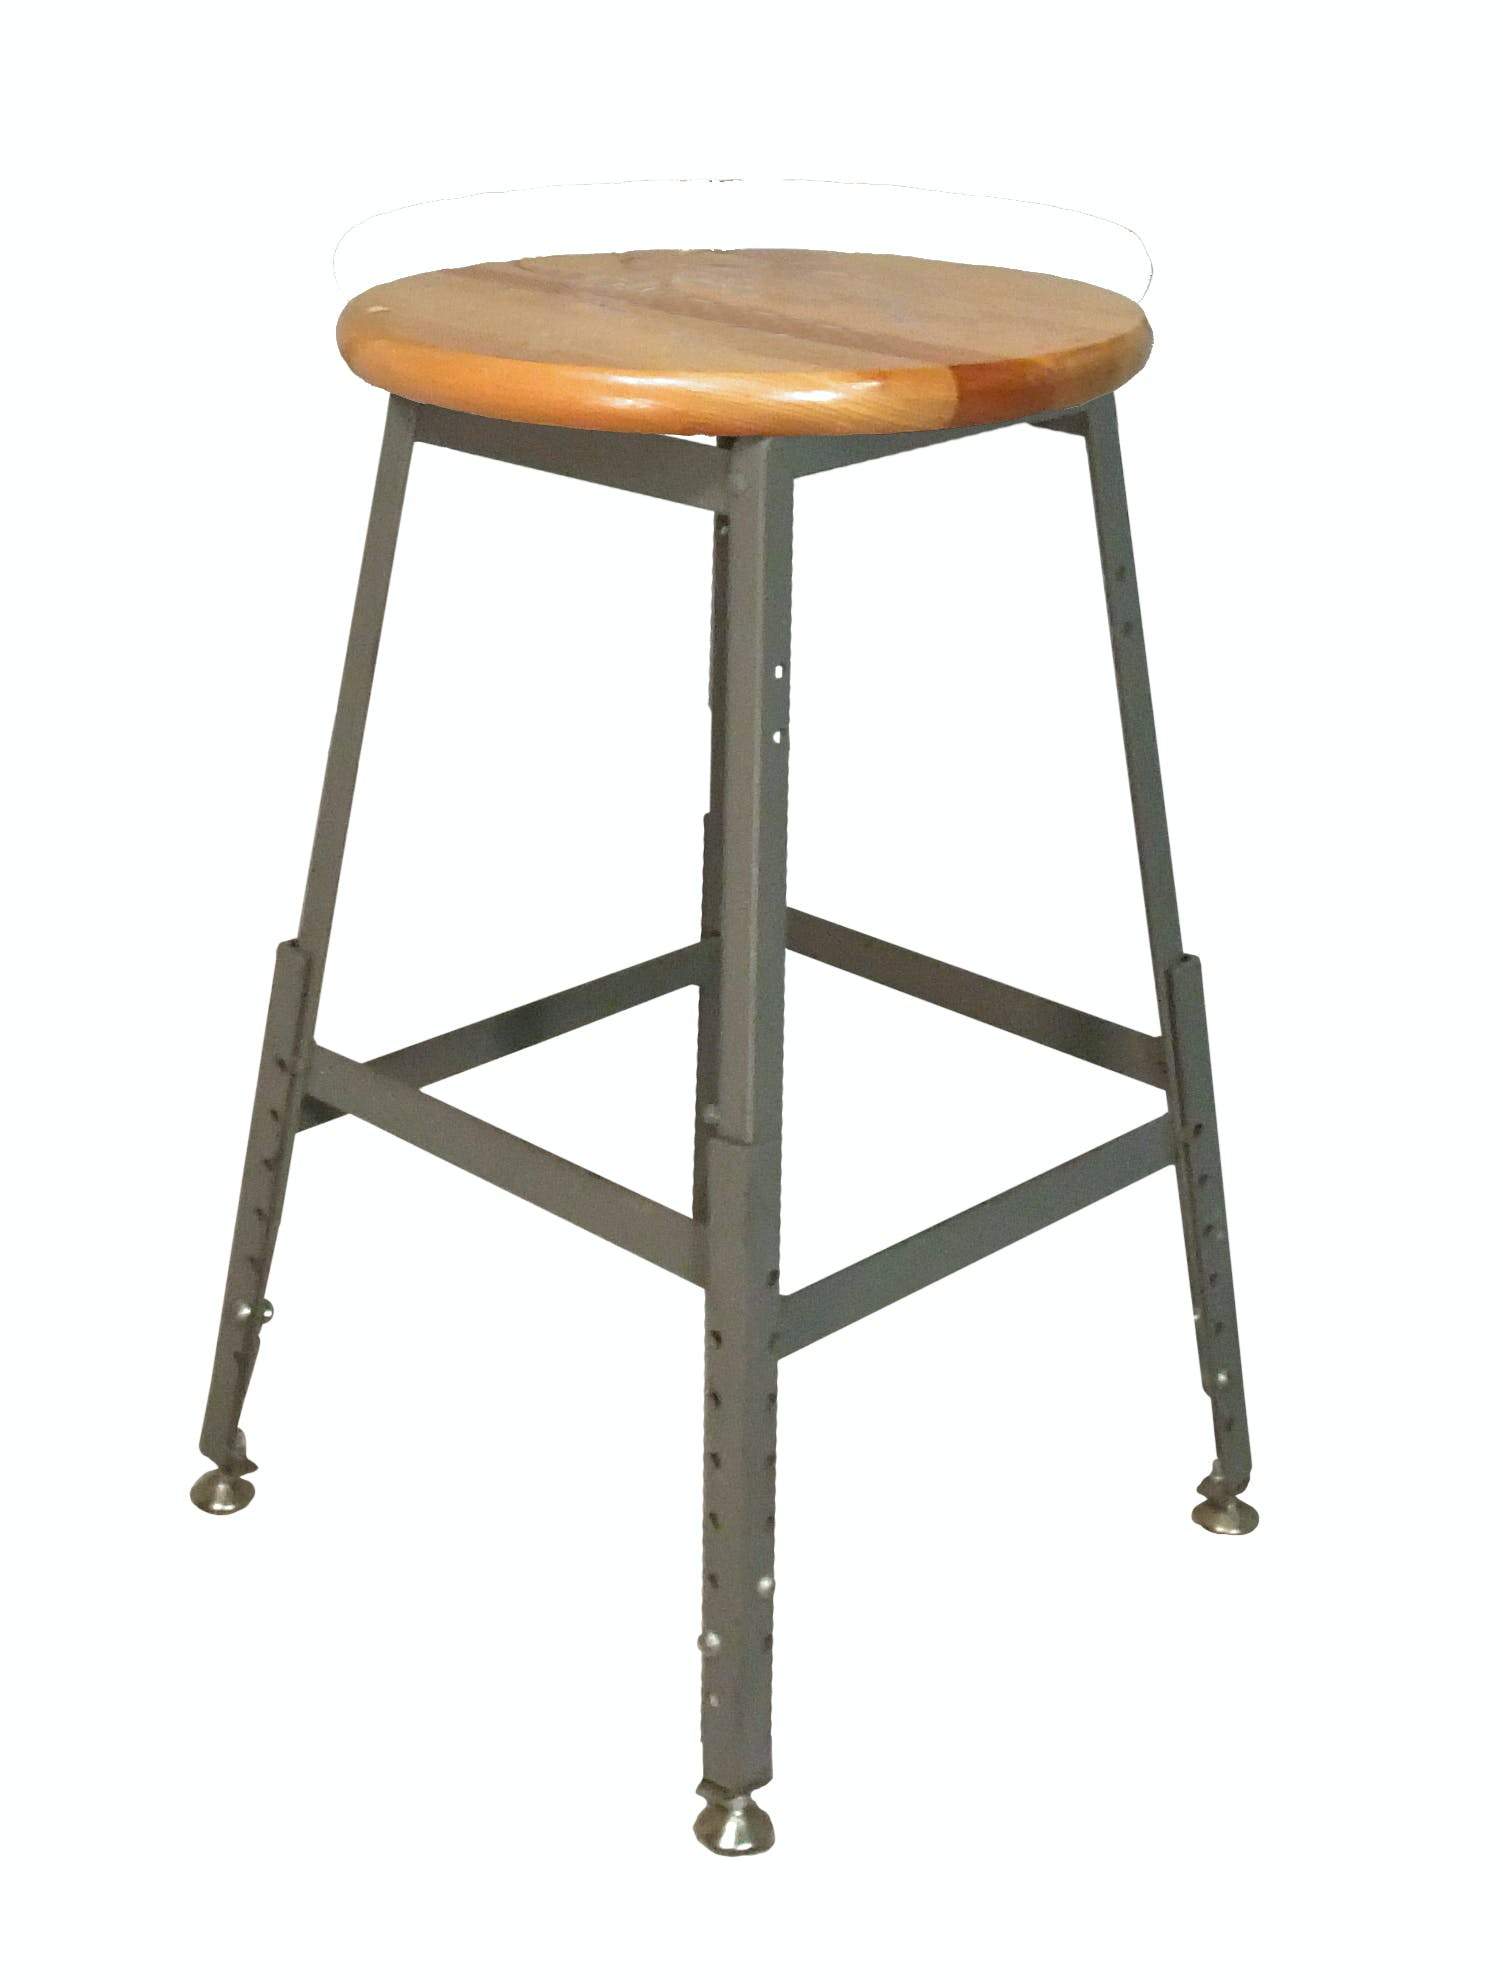 Stools and Chairs Barstool sold by Pollard Brothers Manufacturing Company